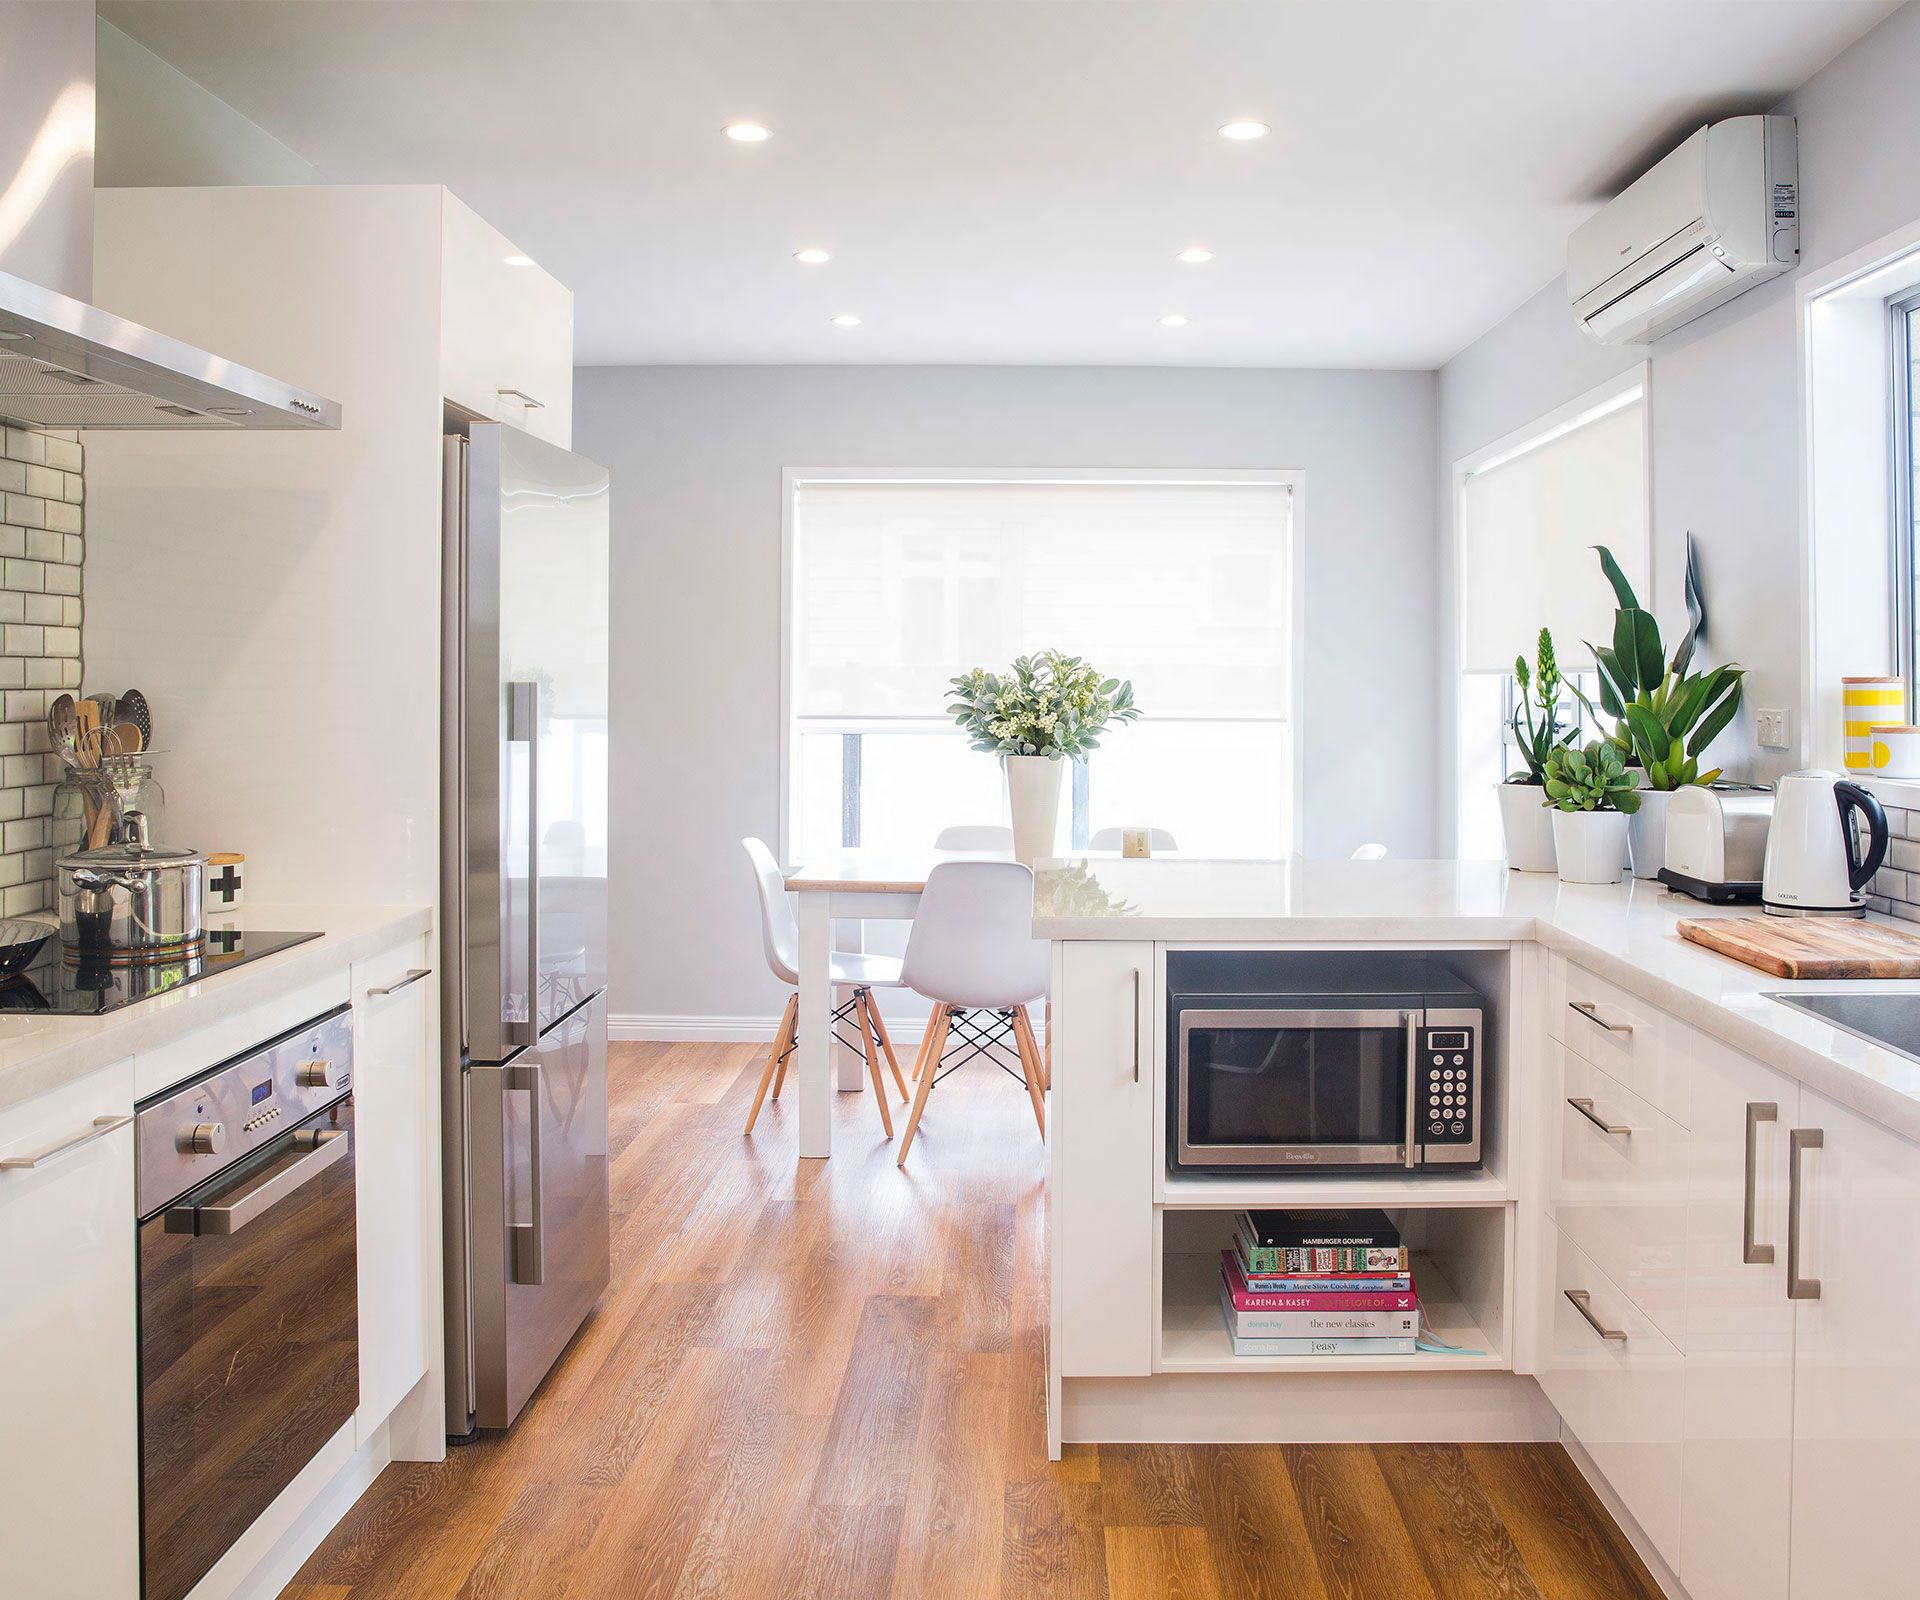 Attrayant Callum And Caroline Won A Kitchen Renovation With Mitre 10 And The Help Of  A Stylist